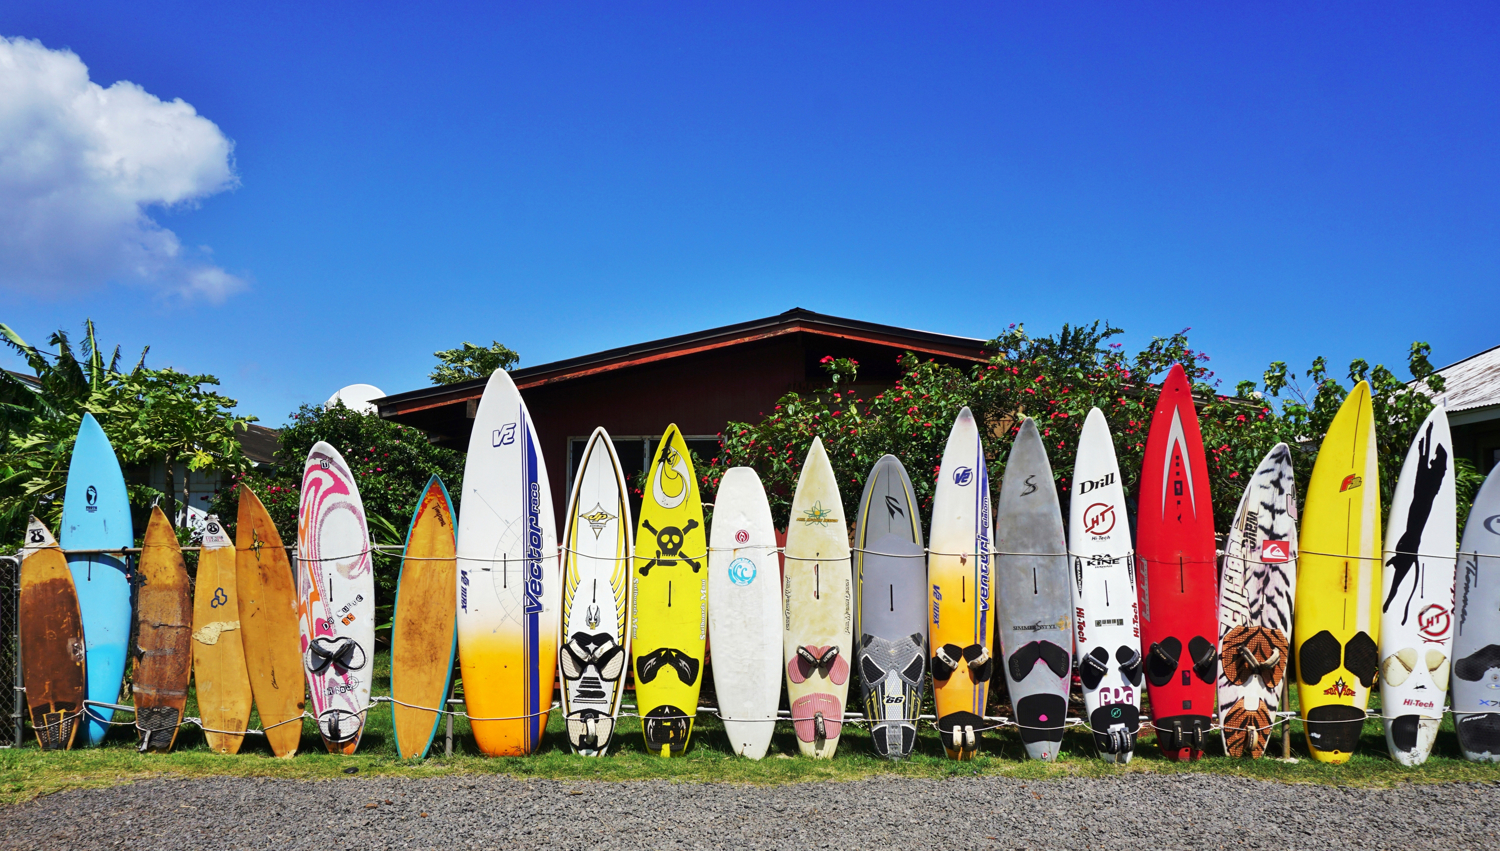 Hawaii-Paia-Surf-Boards054722330.JPG?mtime=20180424154856#asset:101594